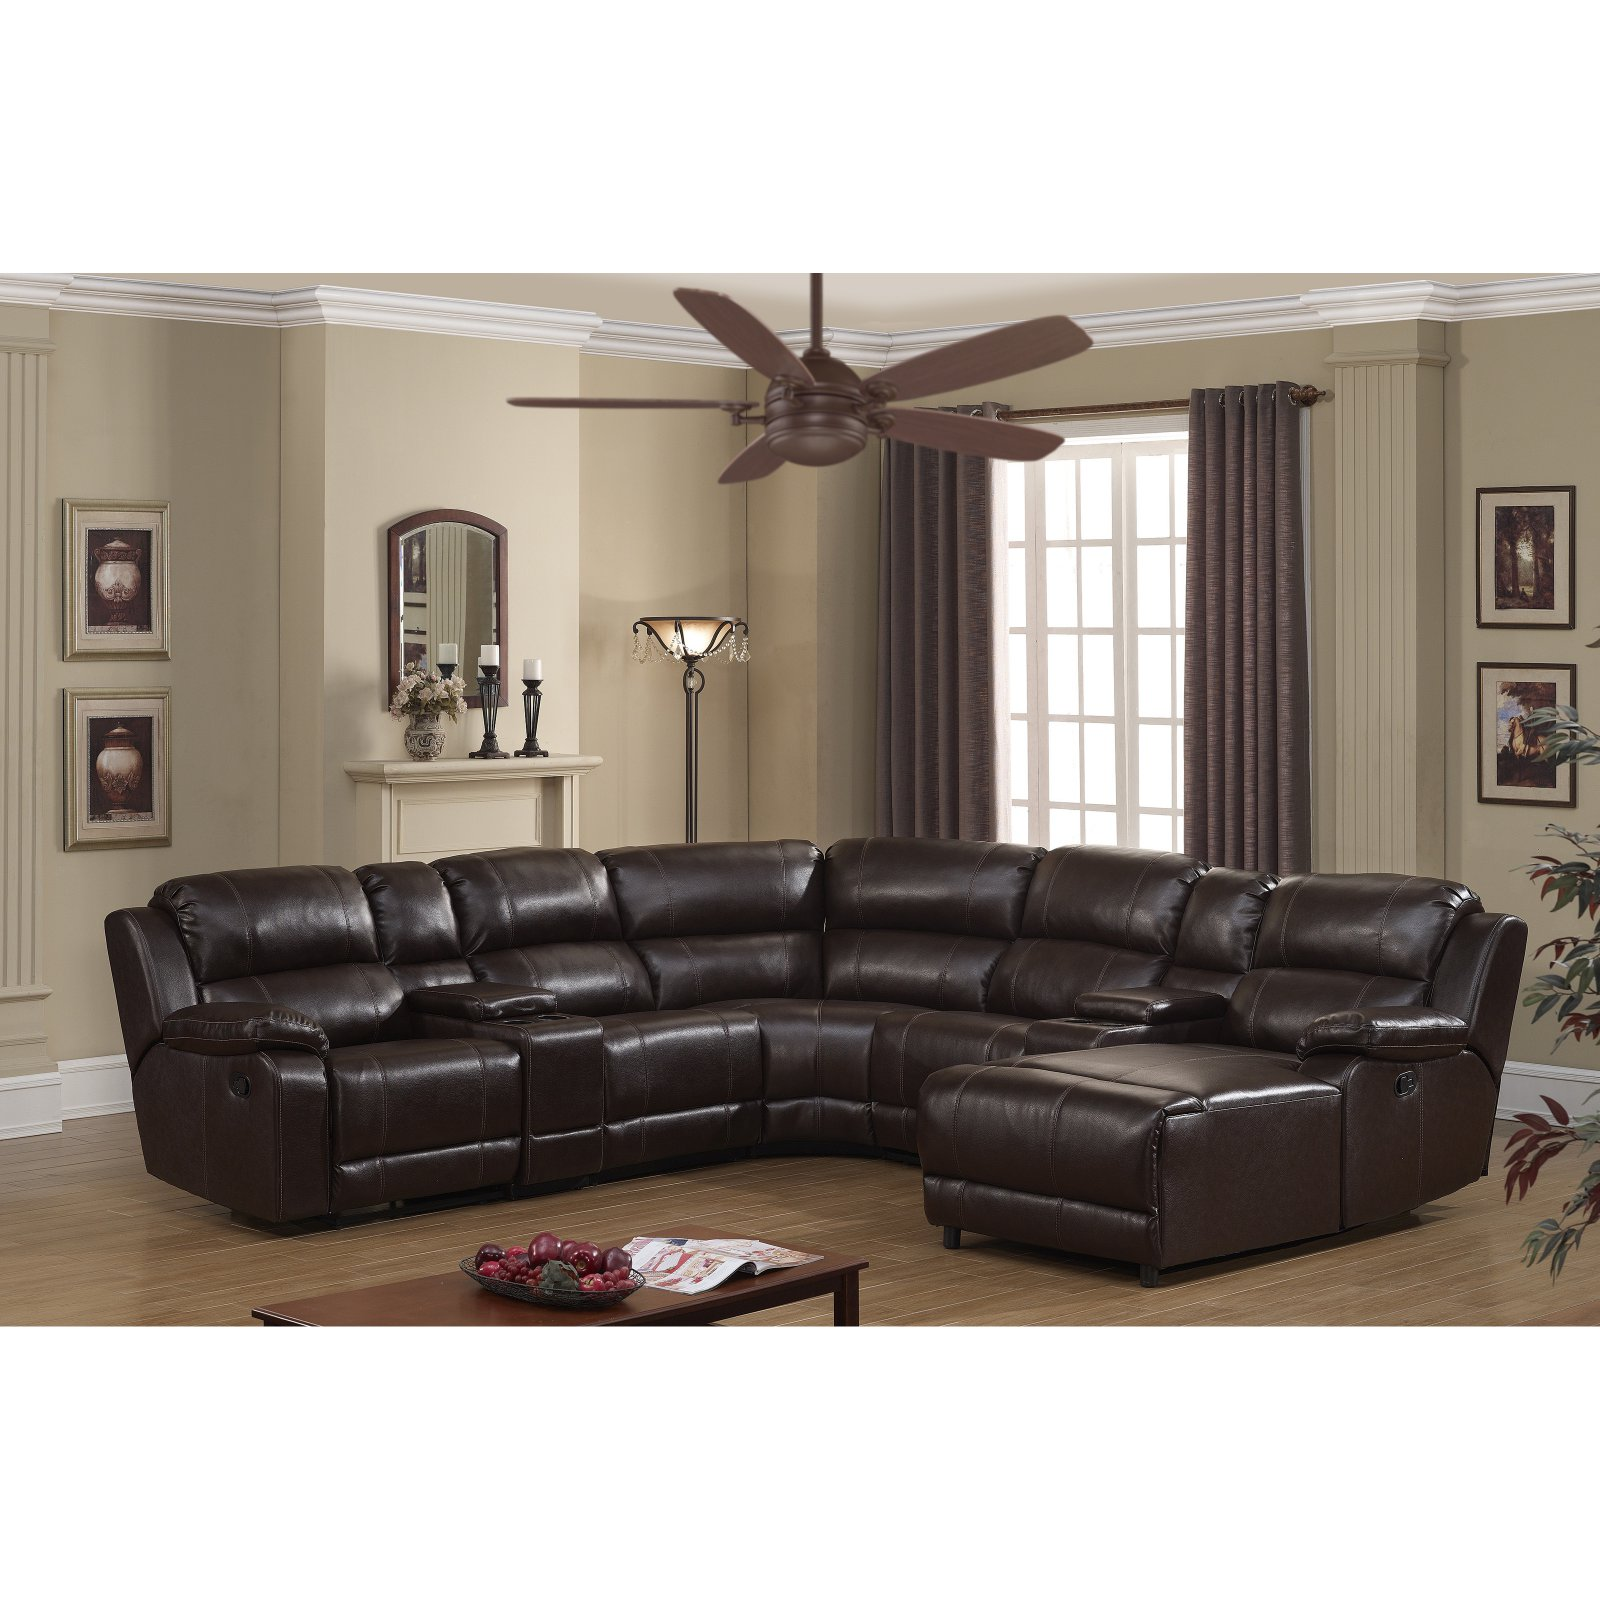 AC Pacific Colton 7 Piece Sectional Sofa Set by A C Pacific Corp